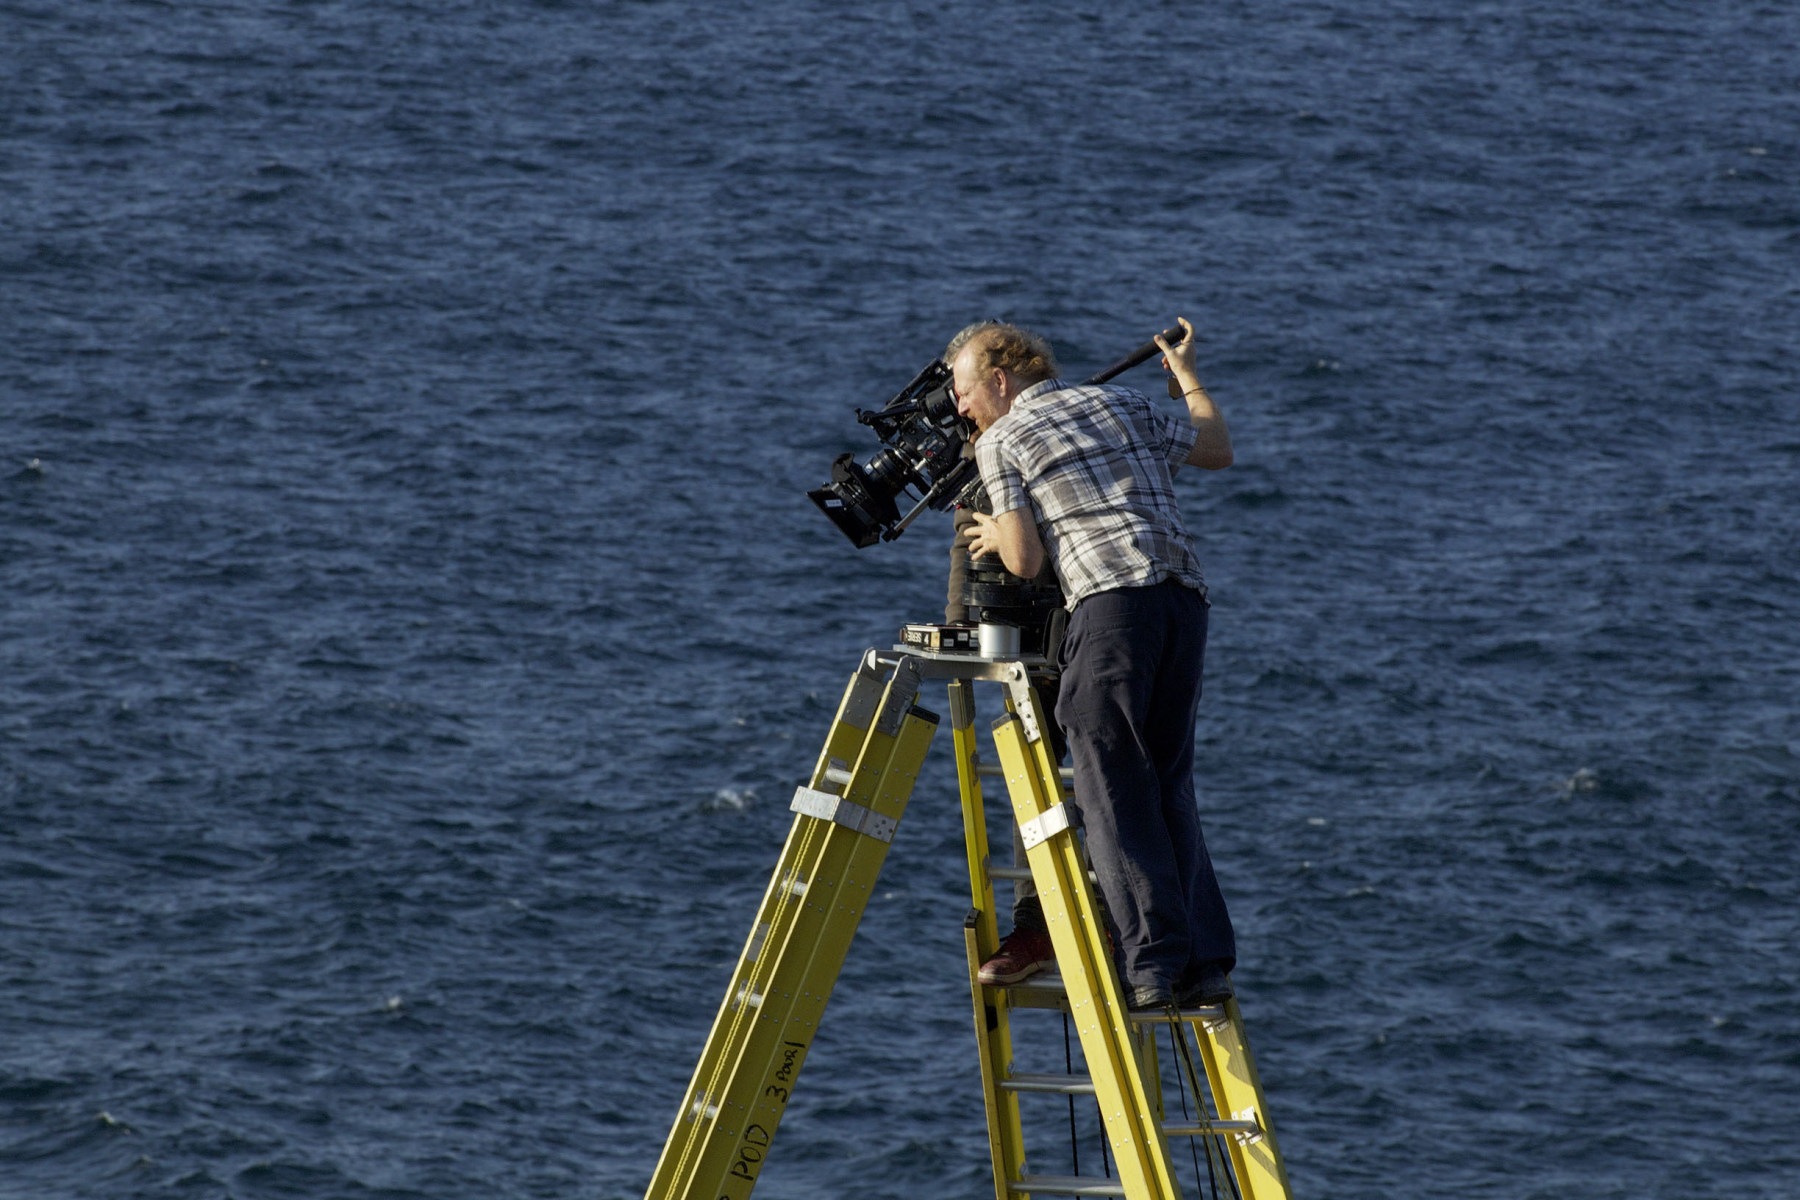 Douglas Koch : The Grand Seduction (2013) Behind the Scenes